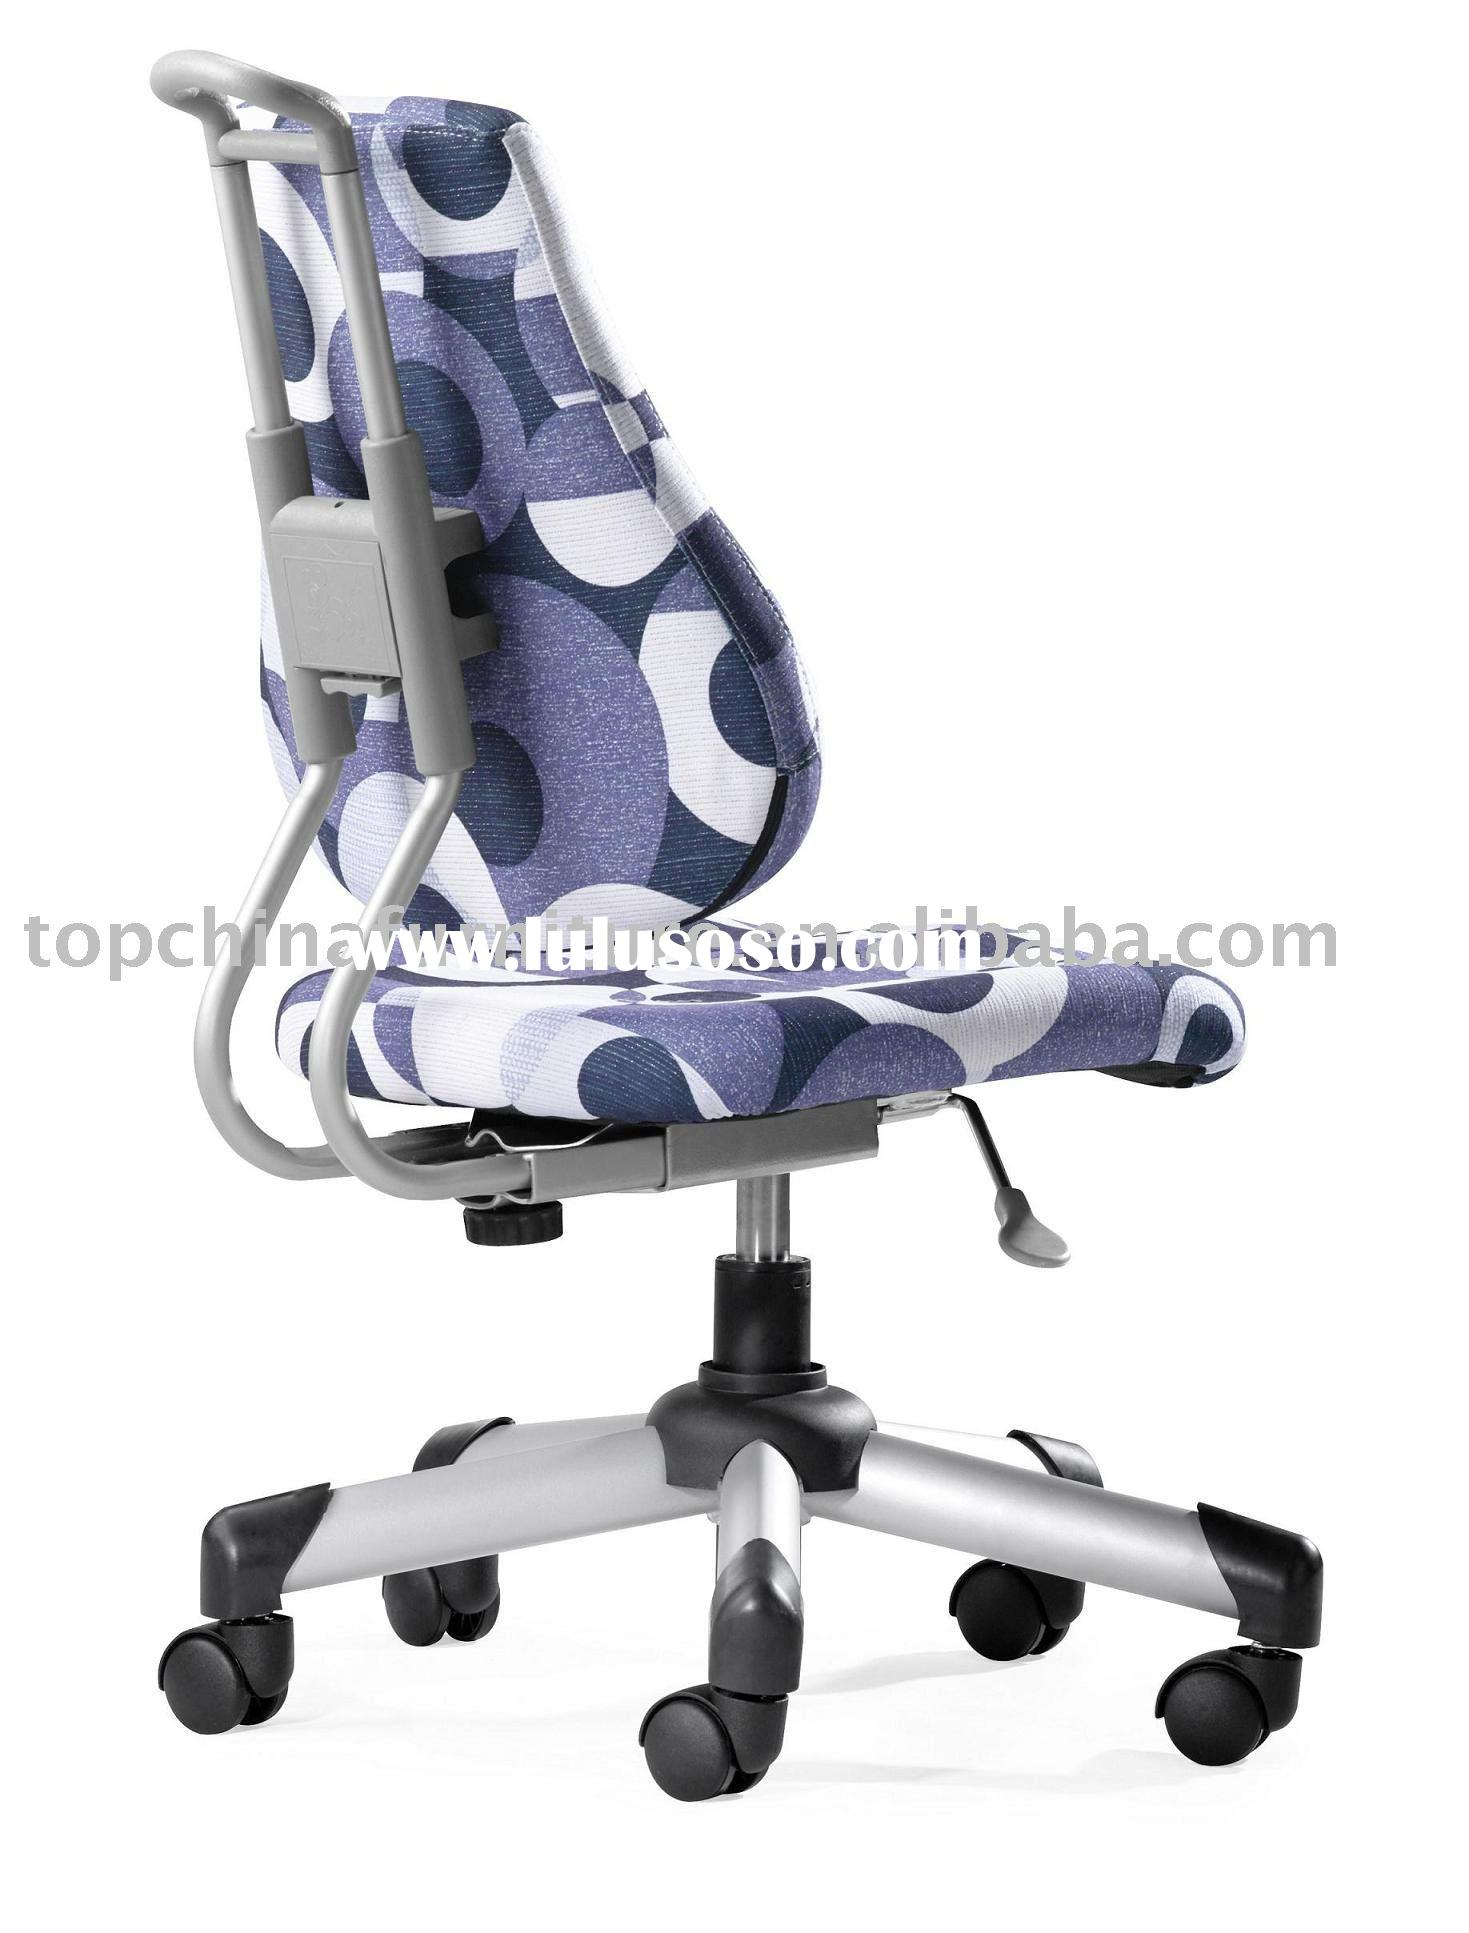 children chairs/kid chair/swivel chair ( small order available)